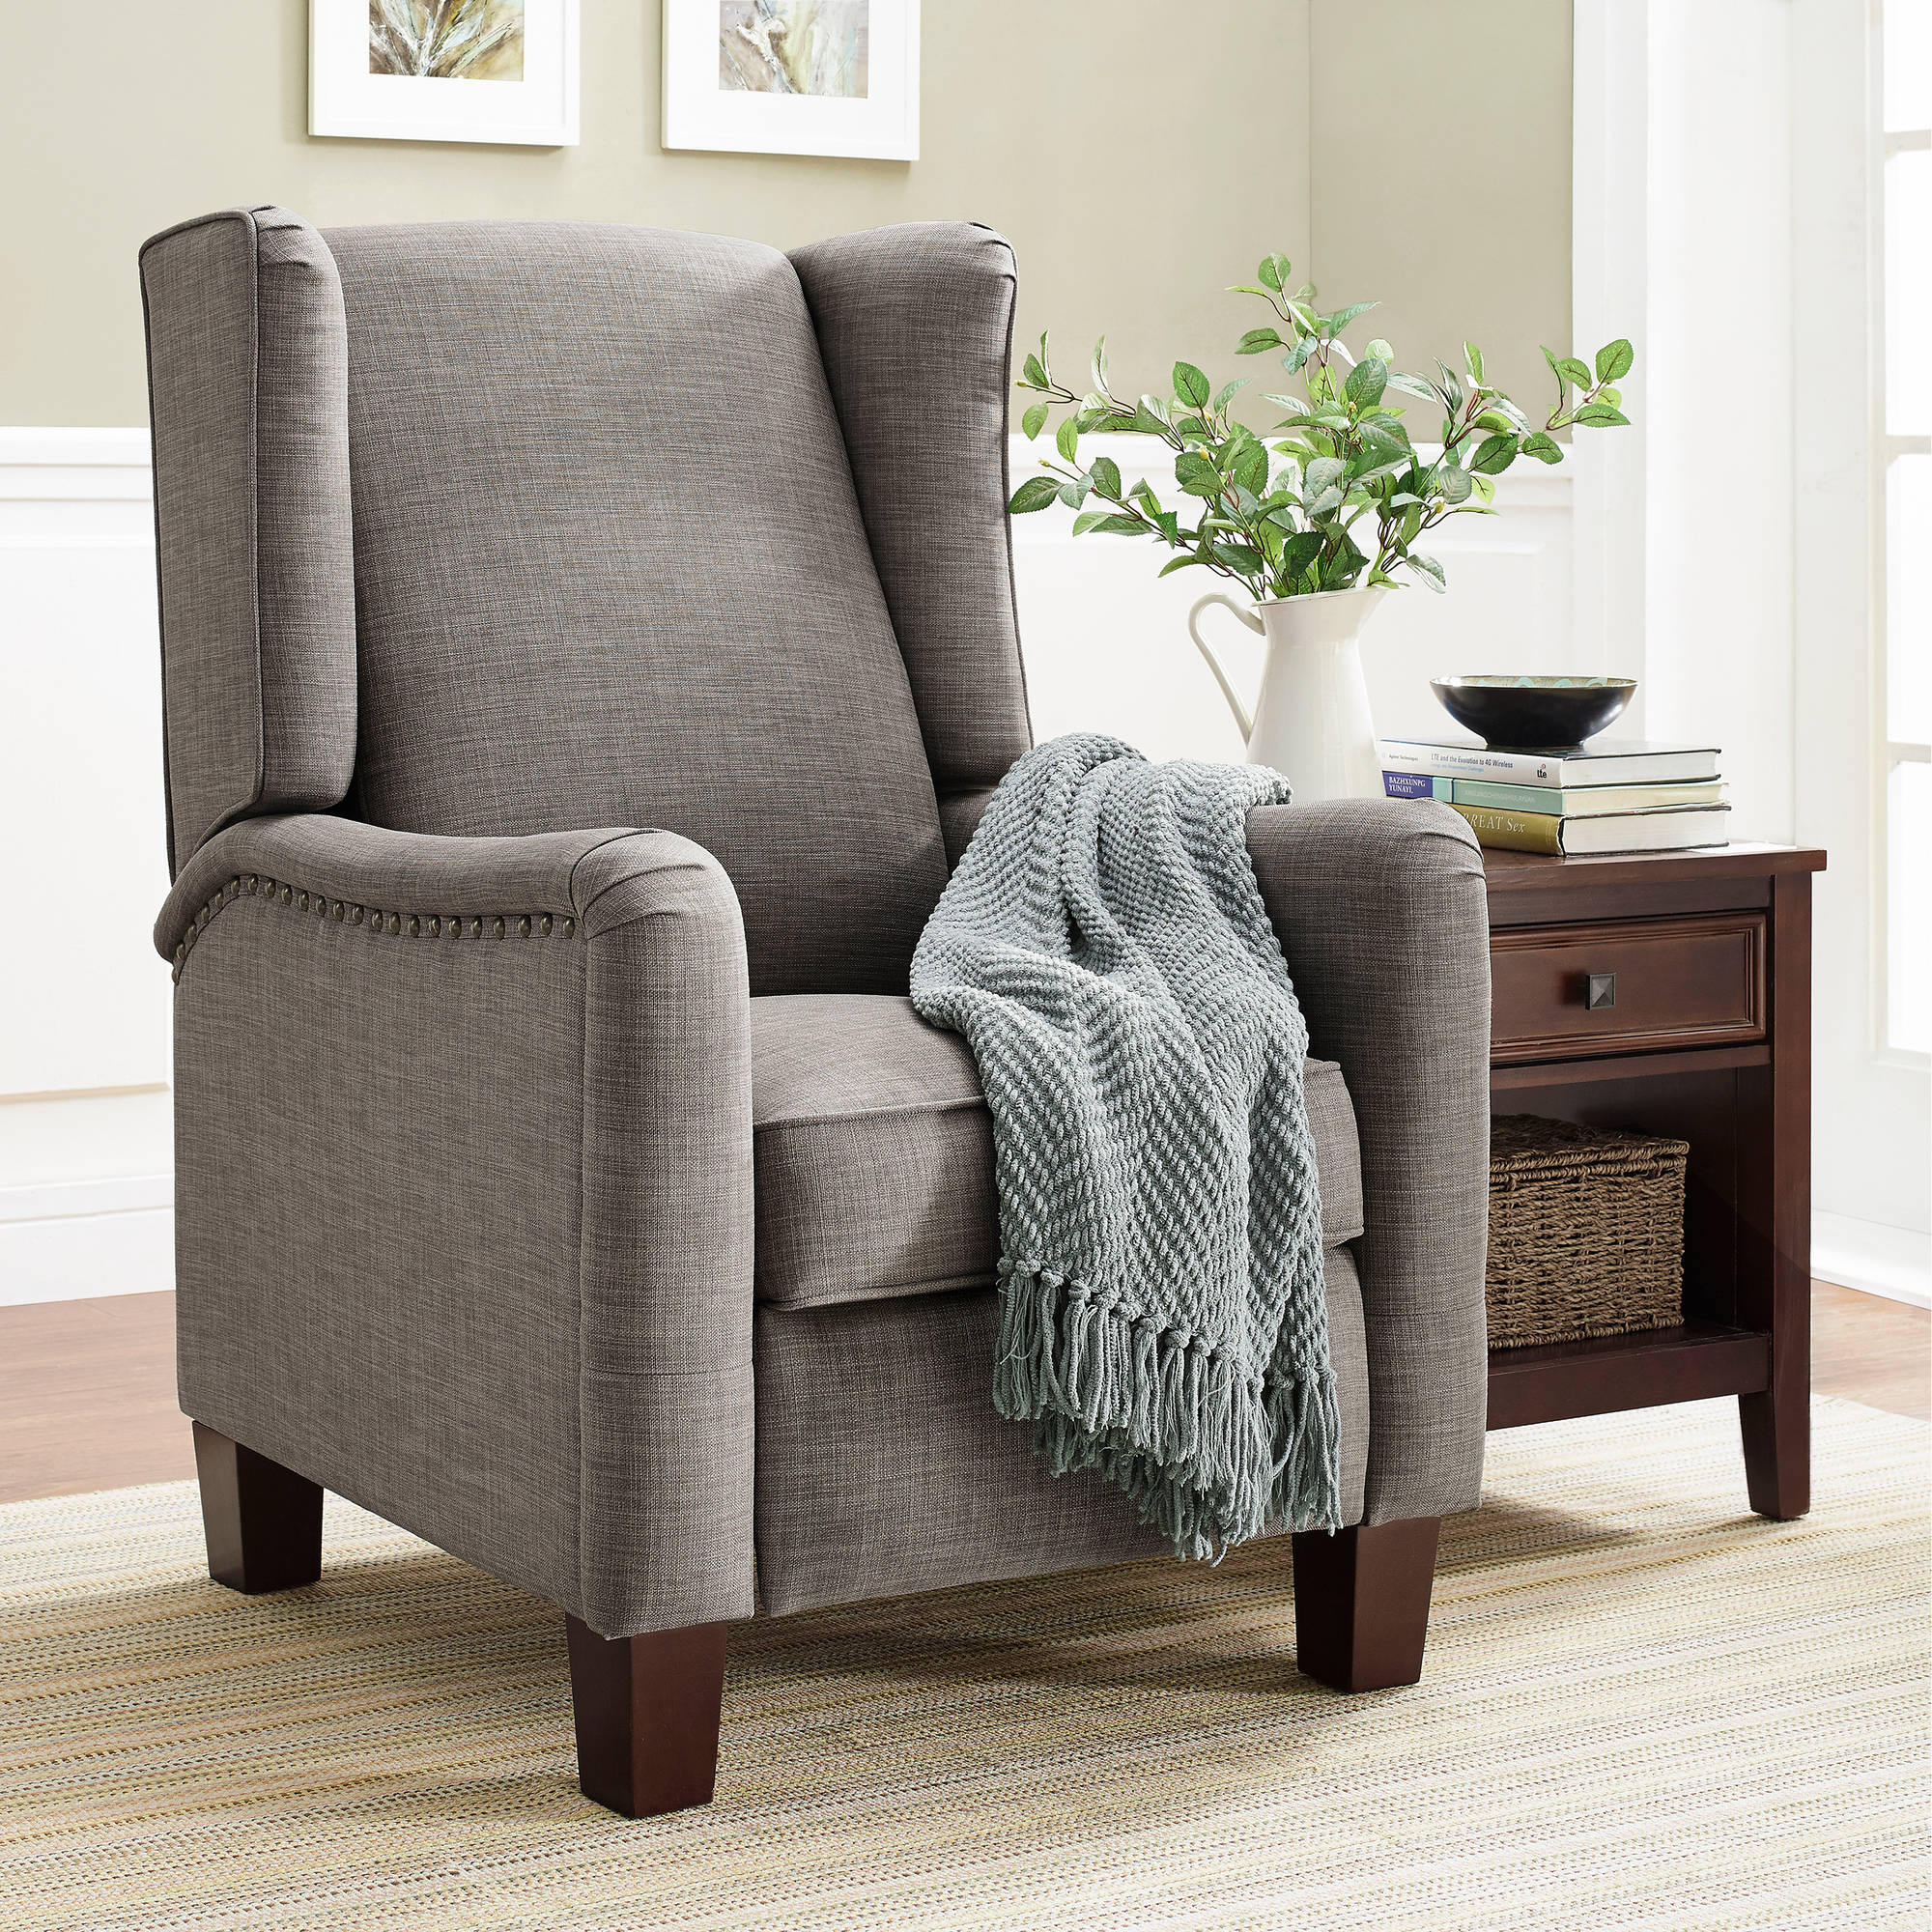 Better Homes and Gardens Grayson Wingback Pushback Recliner & Better Homes and Gardens Grayson Wingback Pushback Recliner ... islam-shia.org